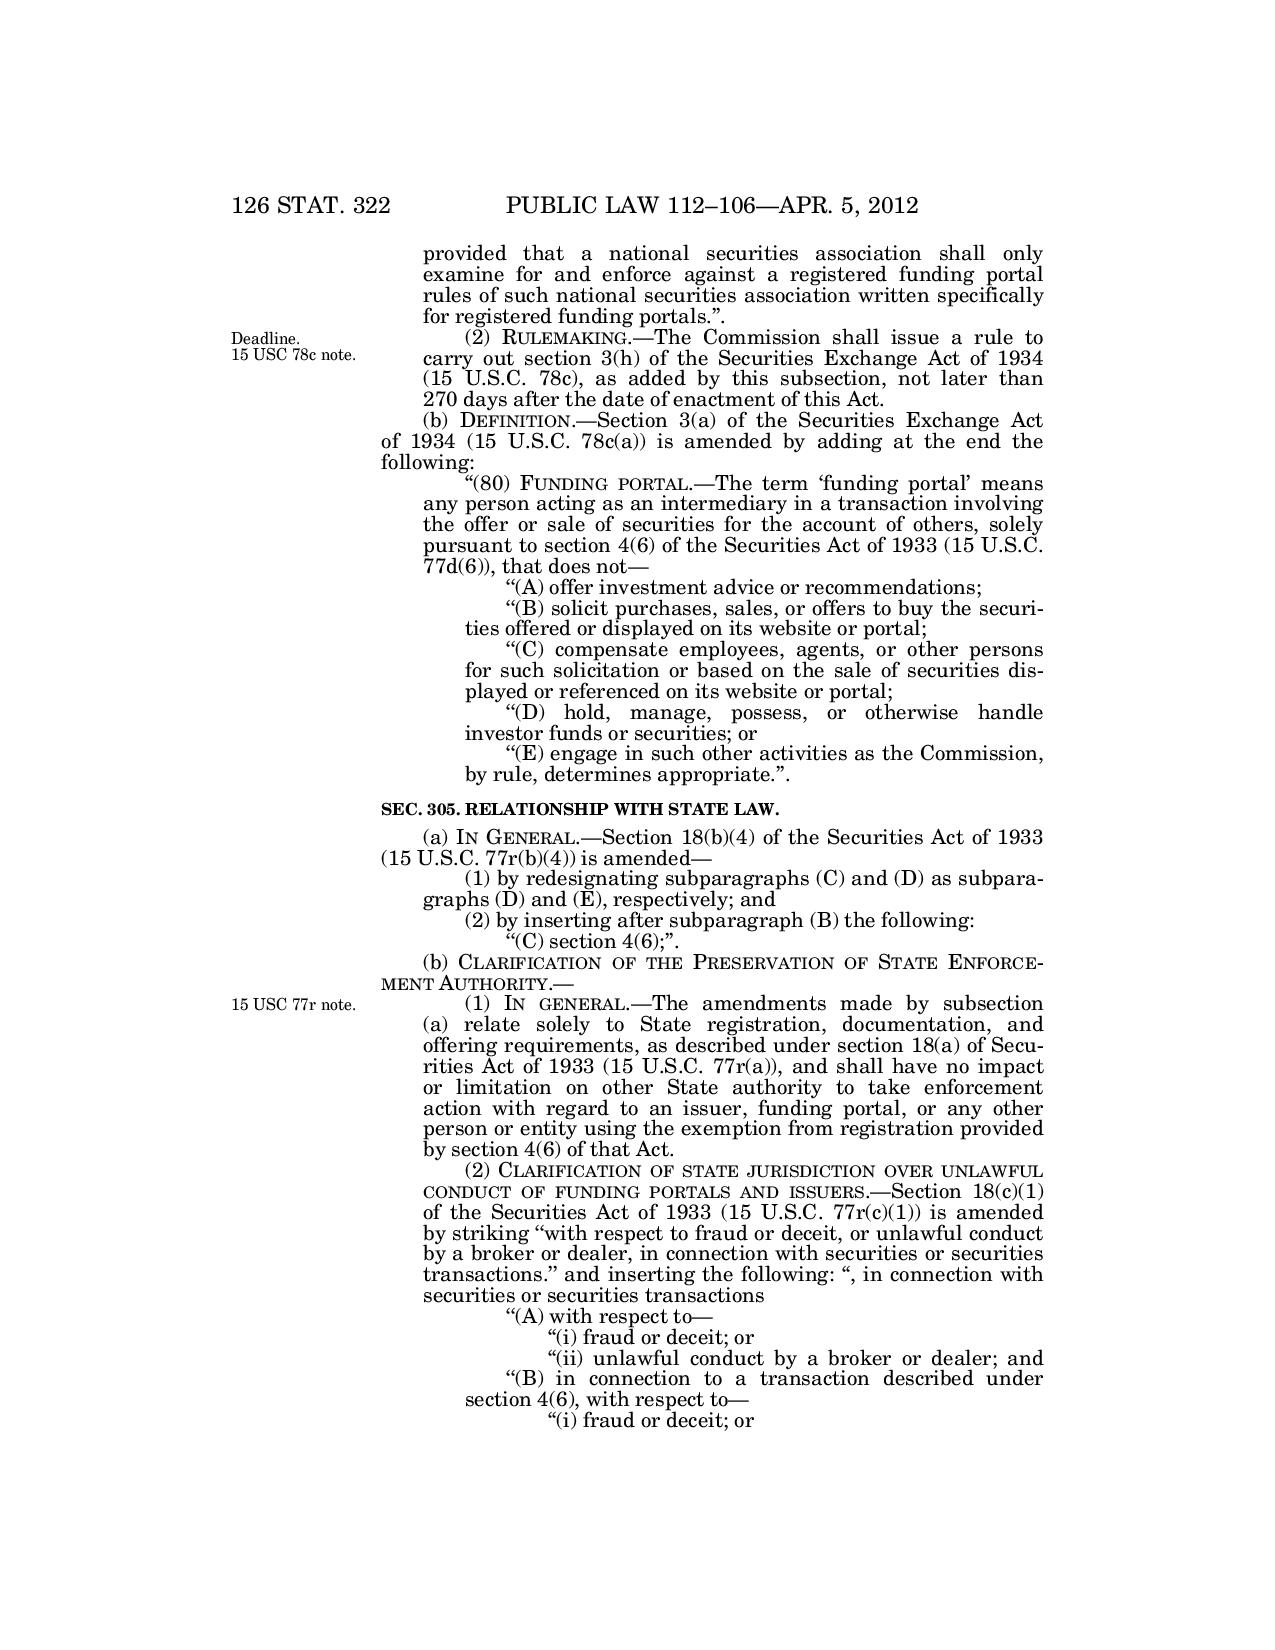 331653864-The-Jumpstart-Our-Business-Startups-Act-JOBS-Act-April-5-of-2012-page-018.jpg